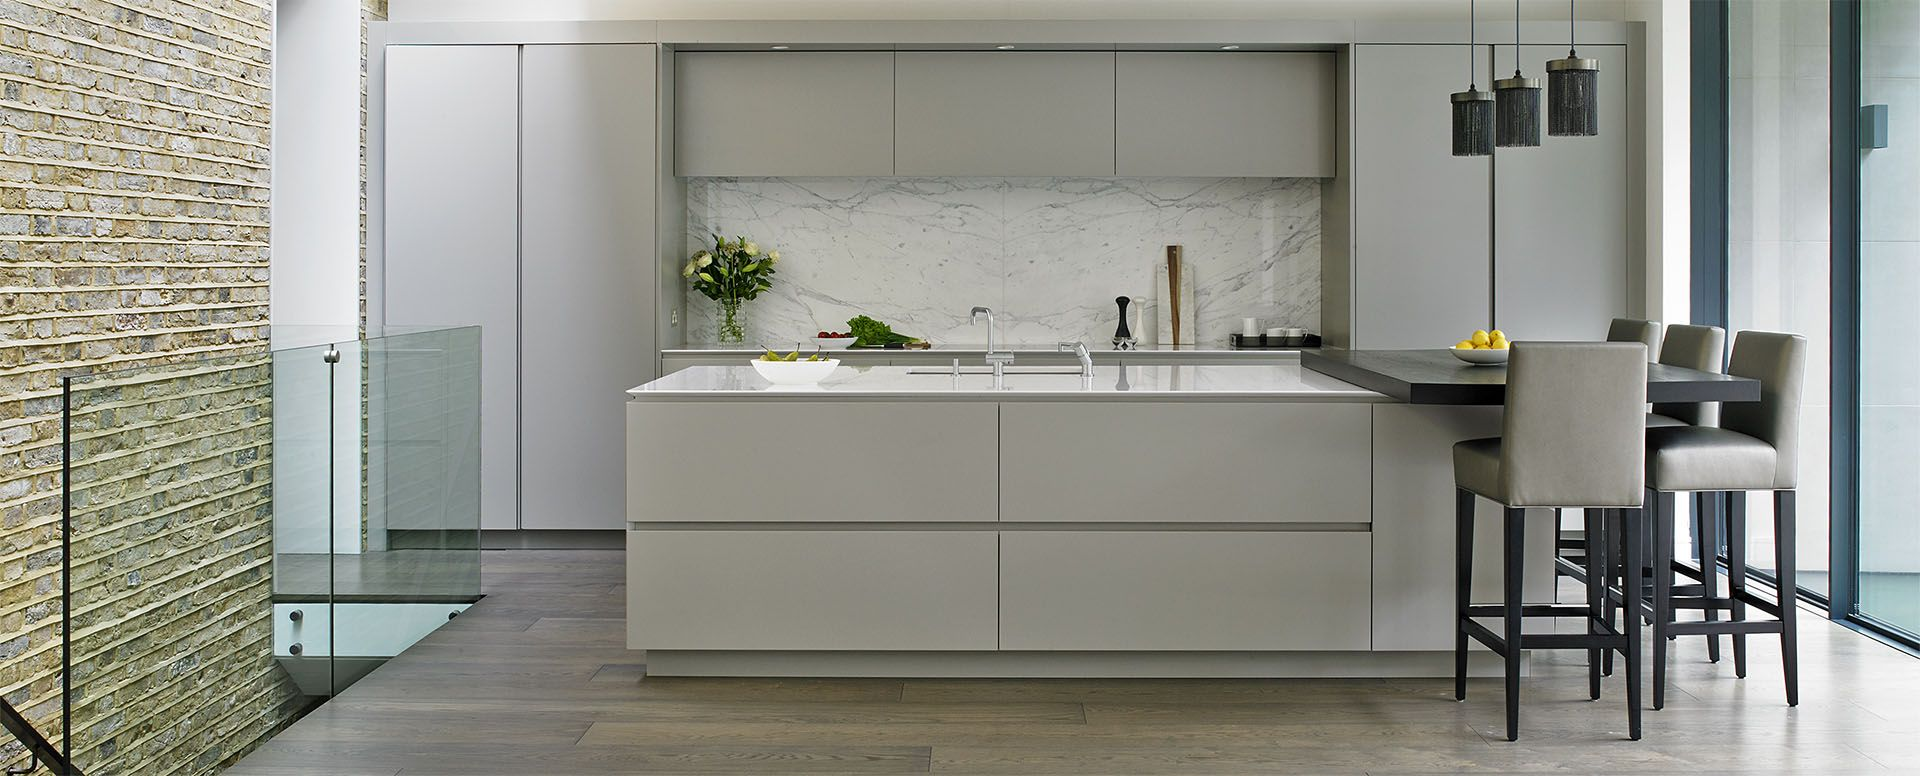 Grey Modern Kitchen with Sleek Handleless cabinets and island with elevated breakfast bar in Wandsworth